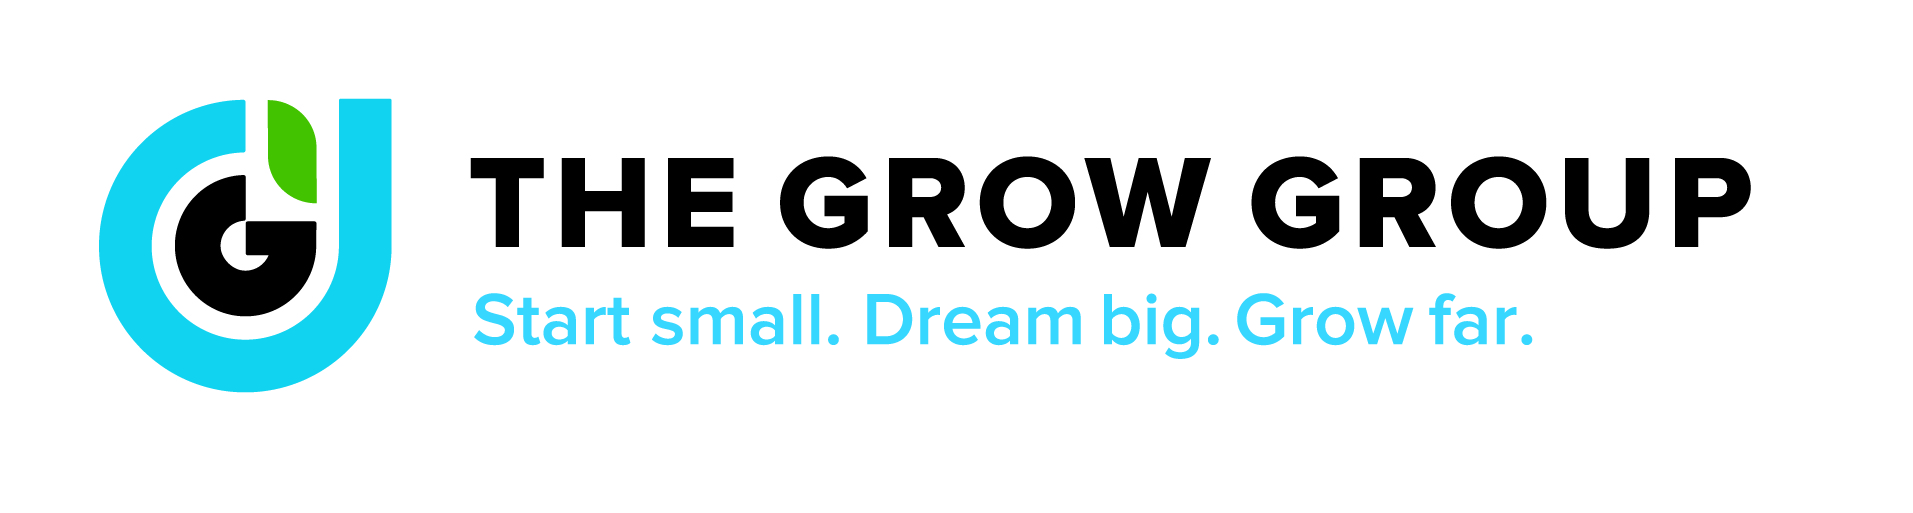 Grow Group logo primary